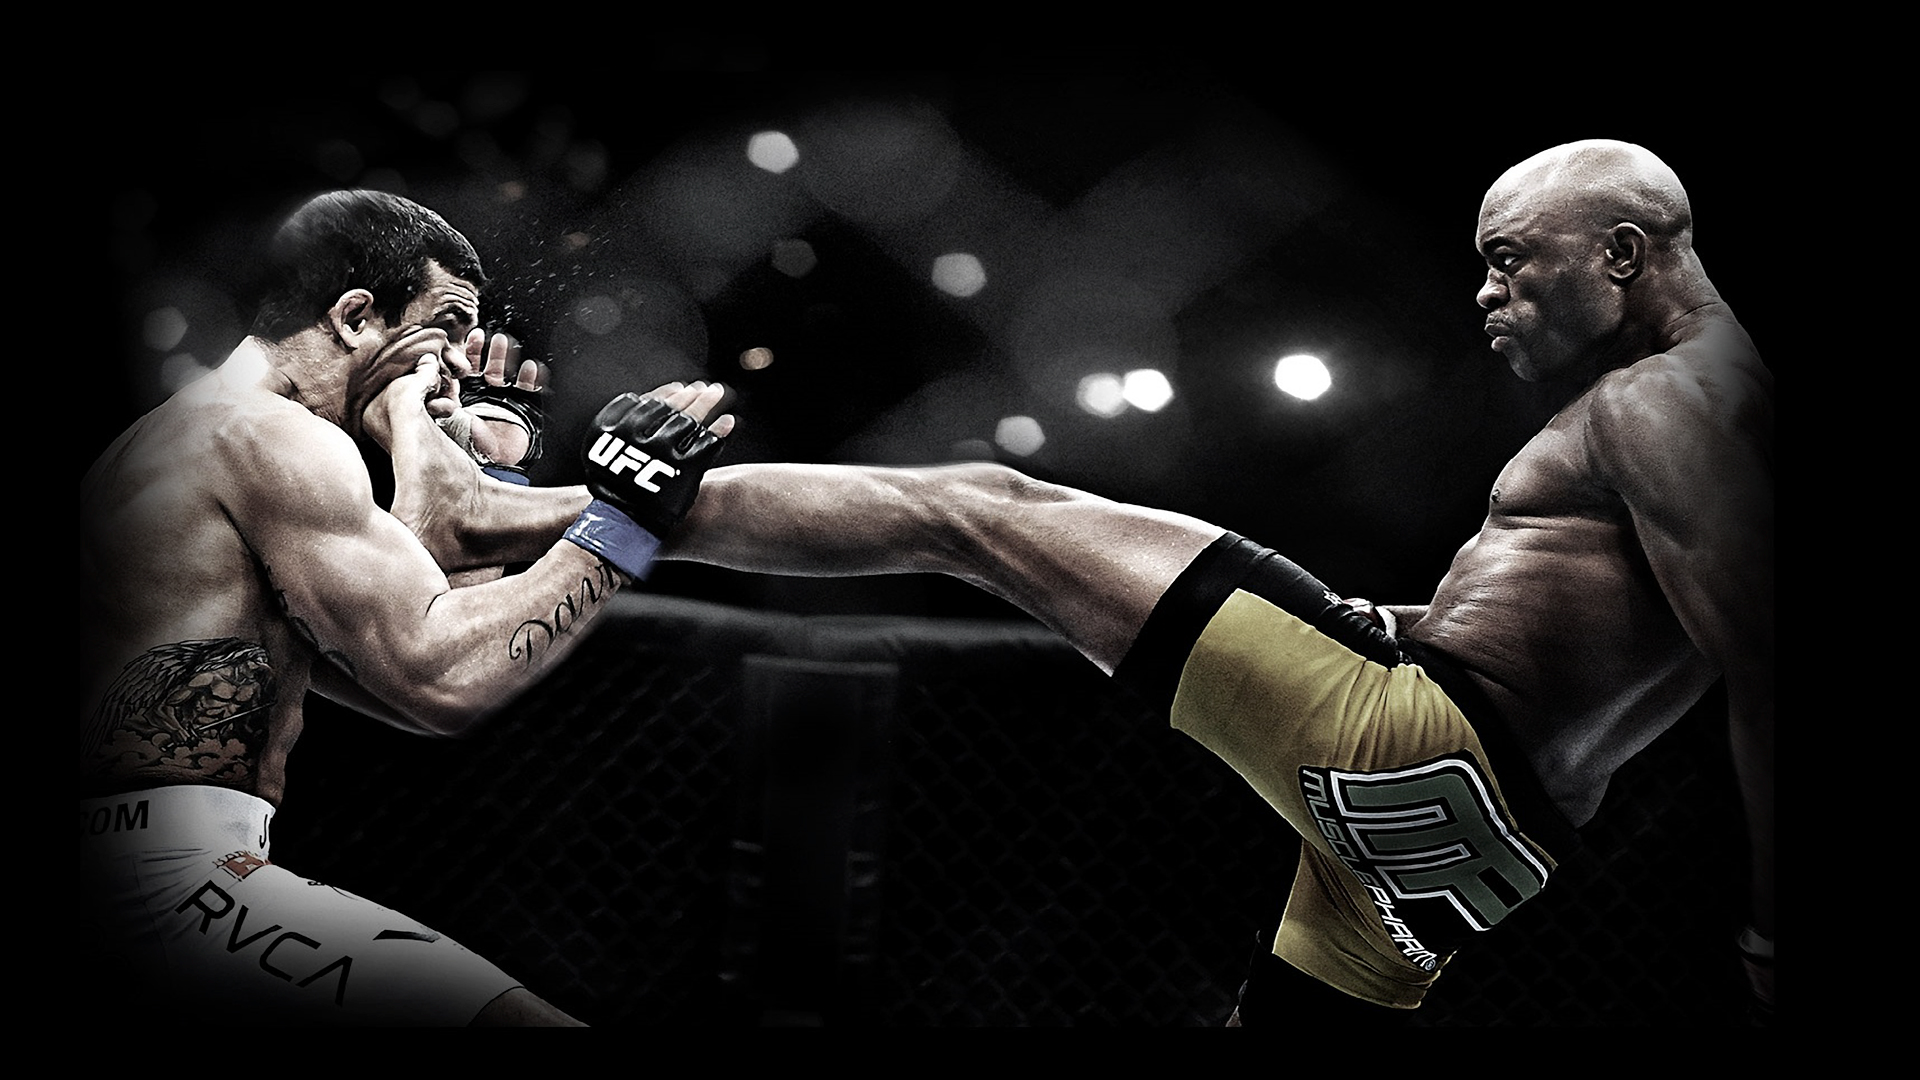 Download Ufc Wallpapers HD 1920x1080